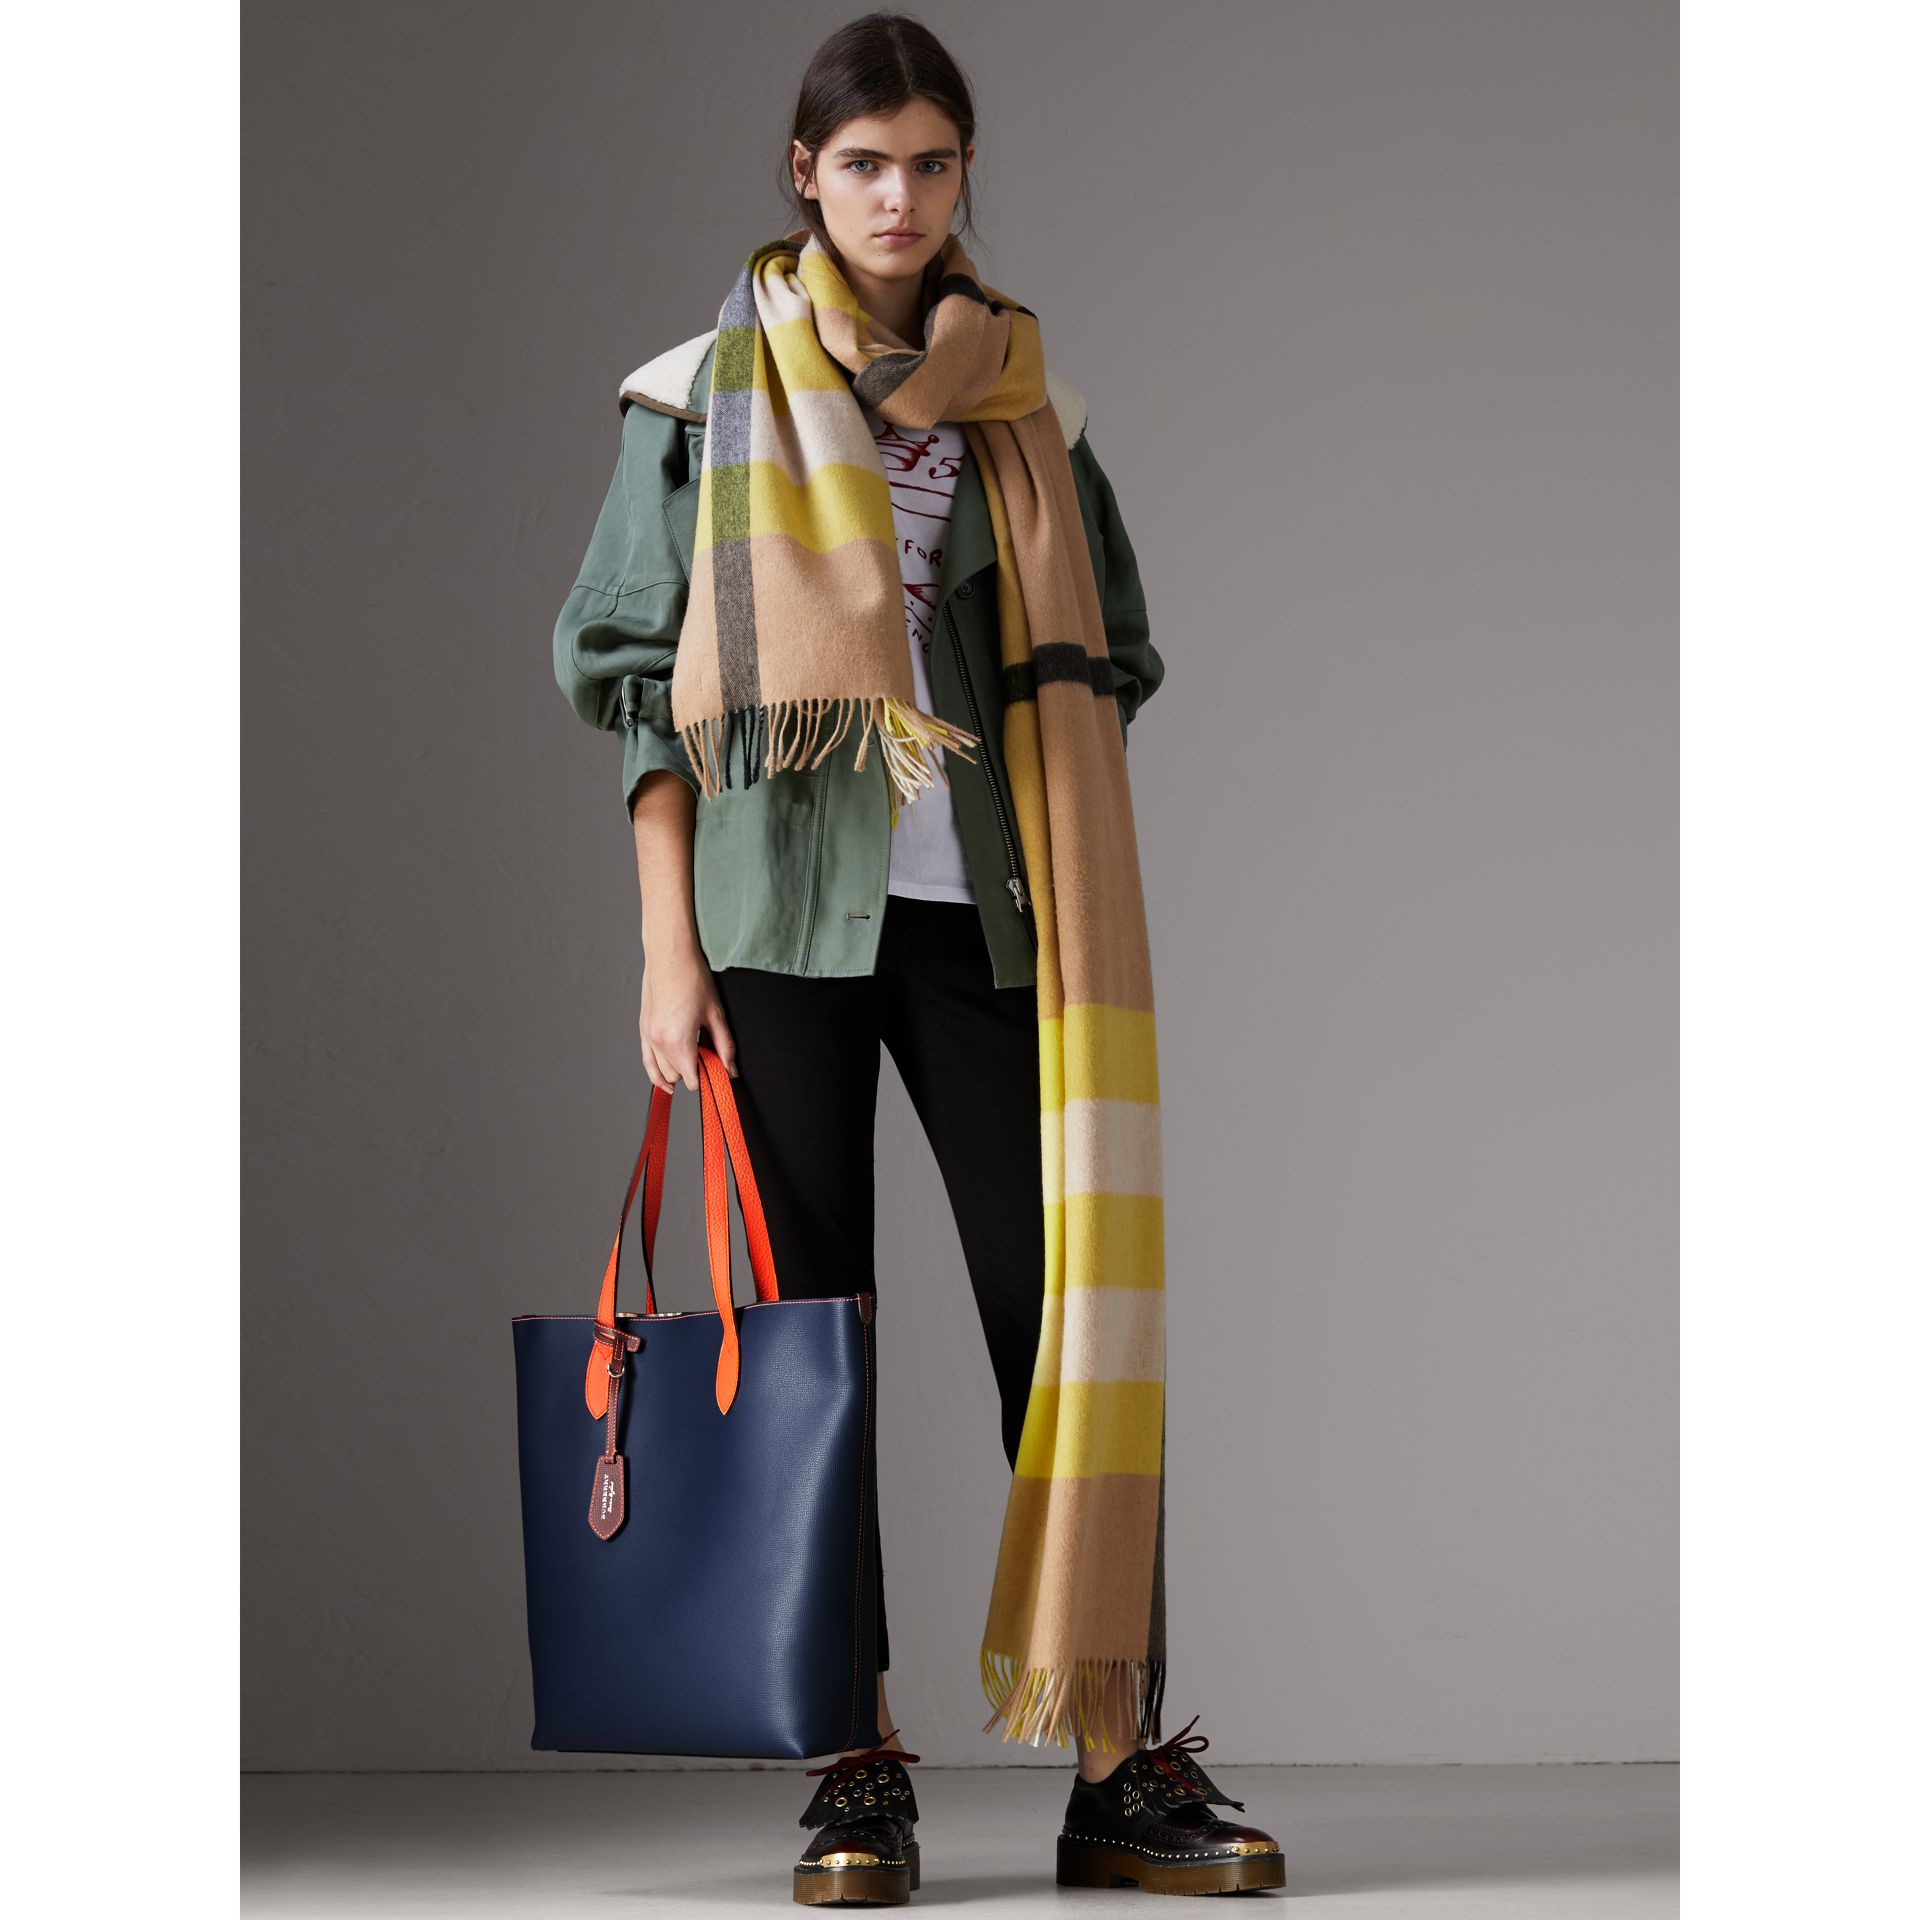 Medium Two-tone Coated Leather Tote in Dark Ultramarine | Burberry United Kingdom - gallery image 2